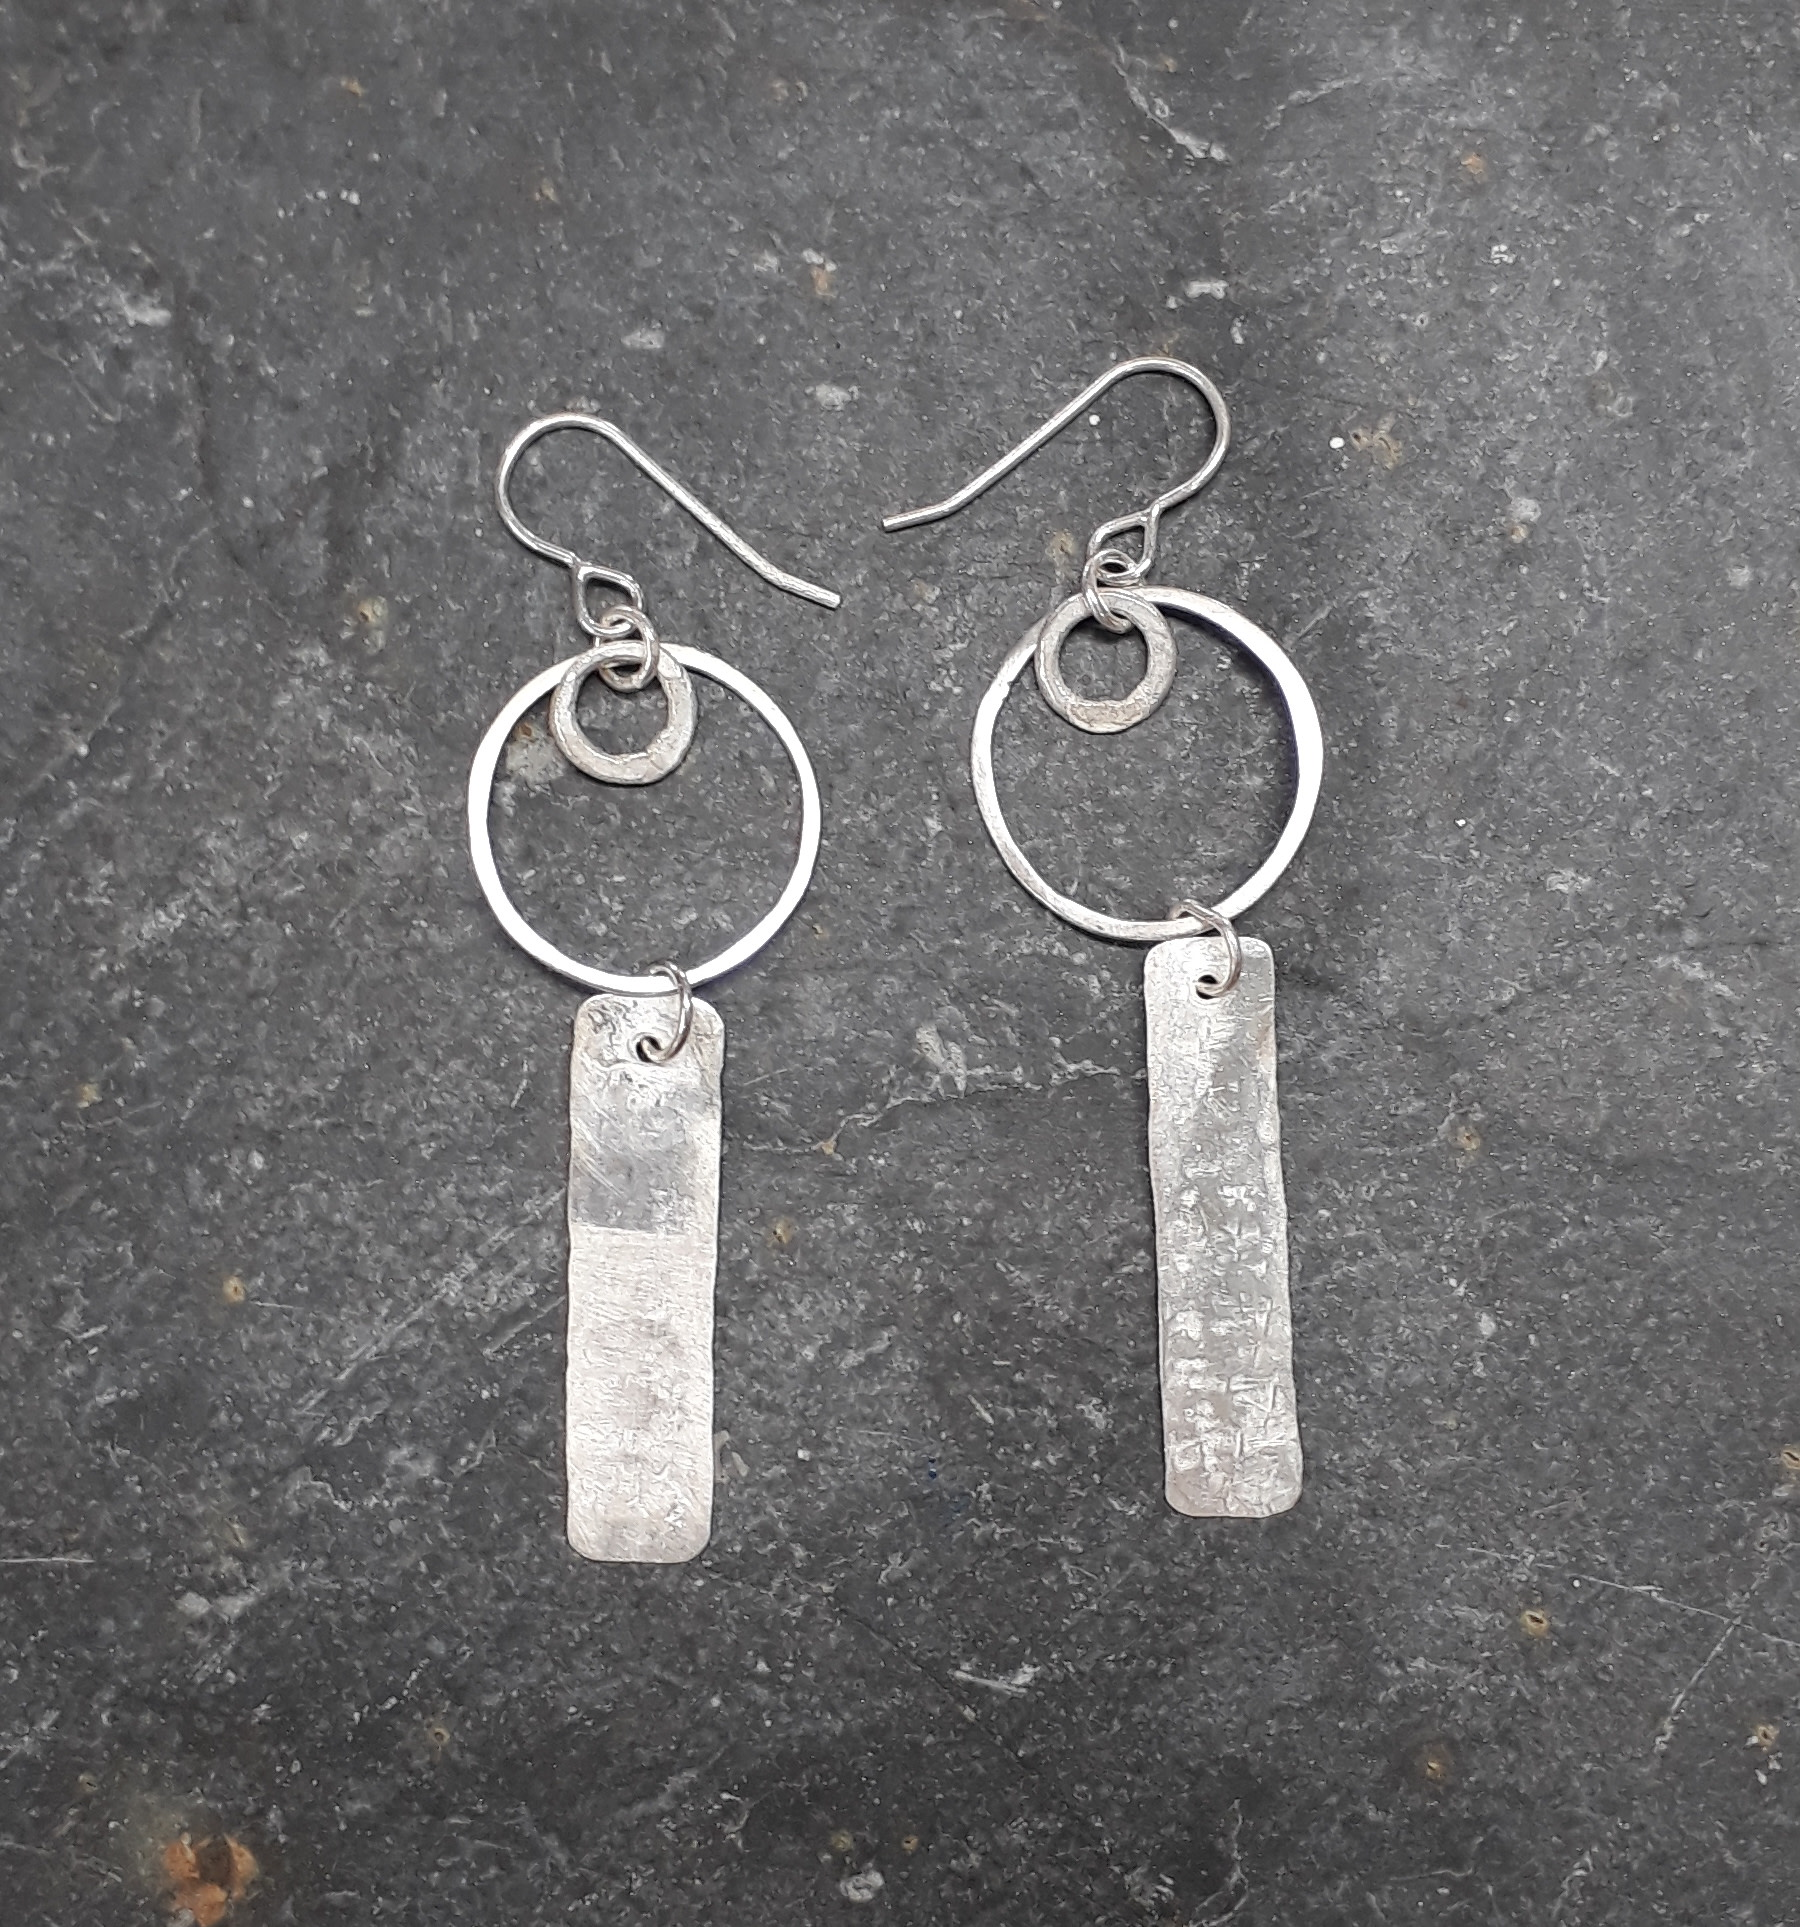 "<span class=""link fancybox-details-link""><a href=""/artists/183-lucy-coyne/works/4534-lucy-coyne-earrings/"">View Detail Page</a></span><div class=""artist""><strong>Lucy Coyne</strong></div> <div class=""title""><em>Earrings</em></div> <div class=""medium"">circle and pressed piece</div><div class=""price"">£120.00</div>"